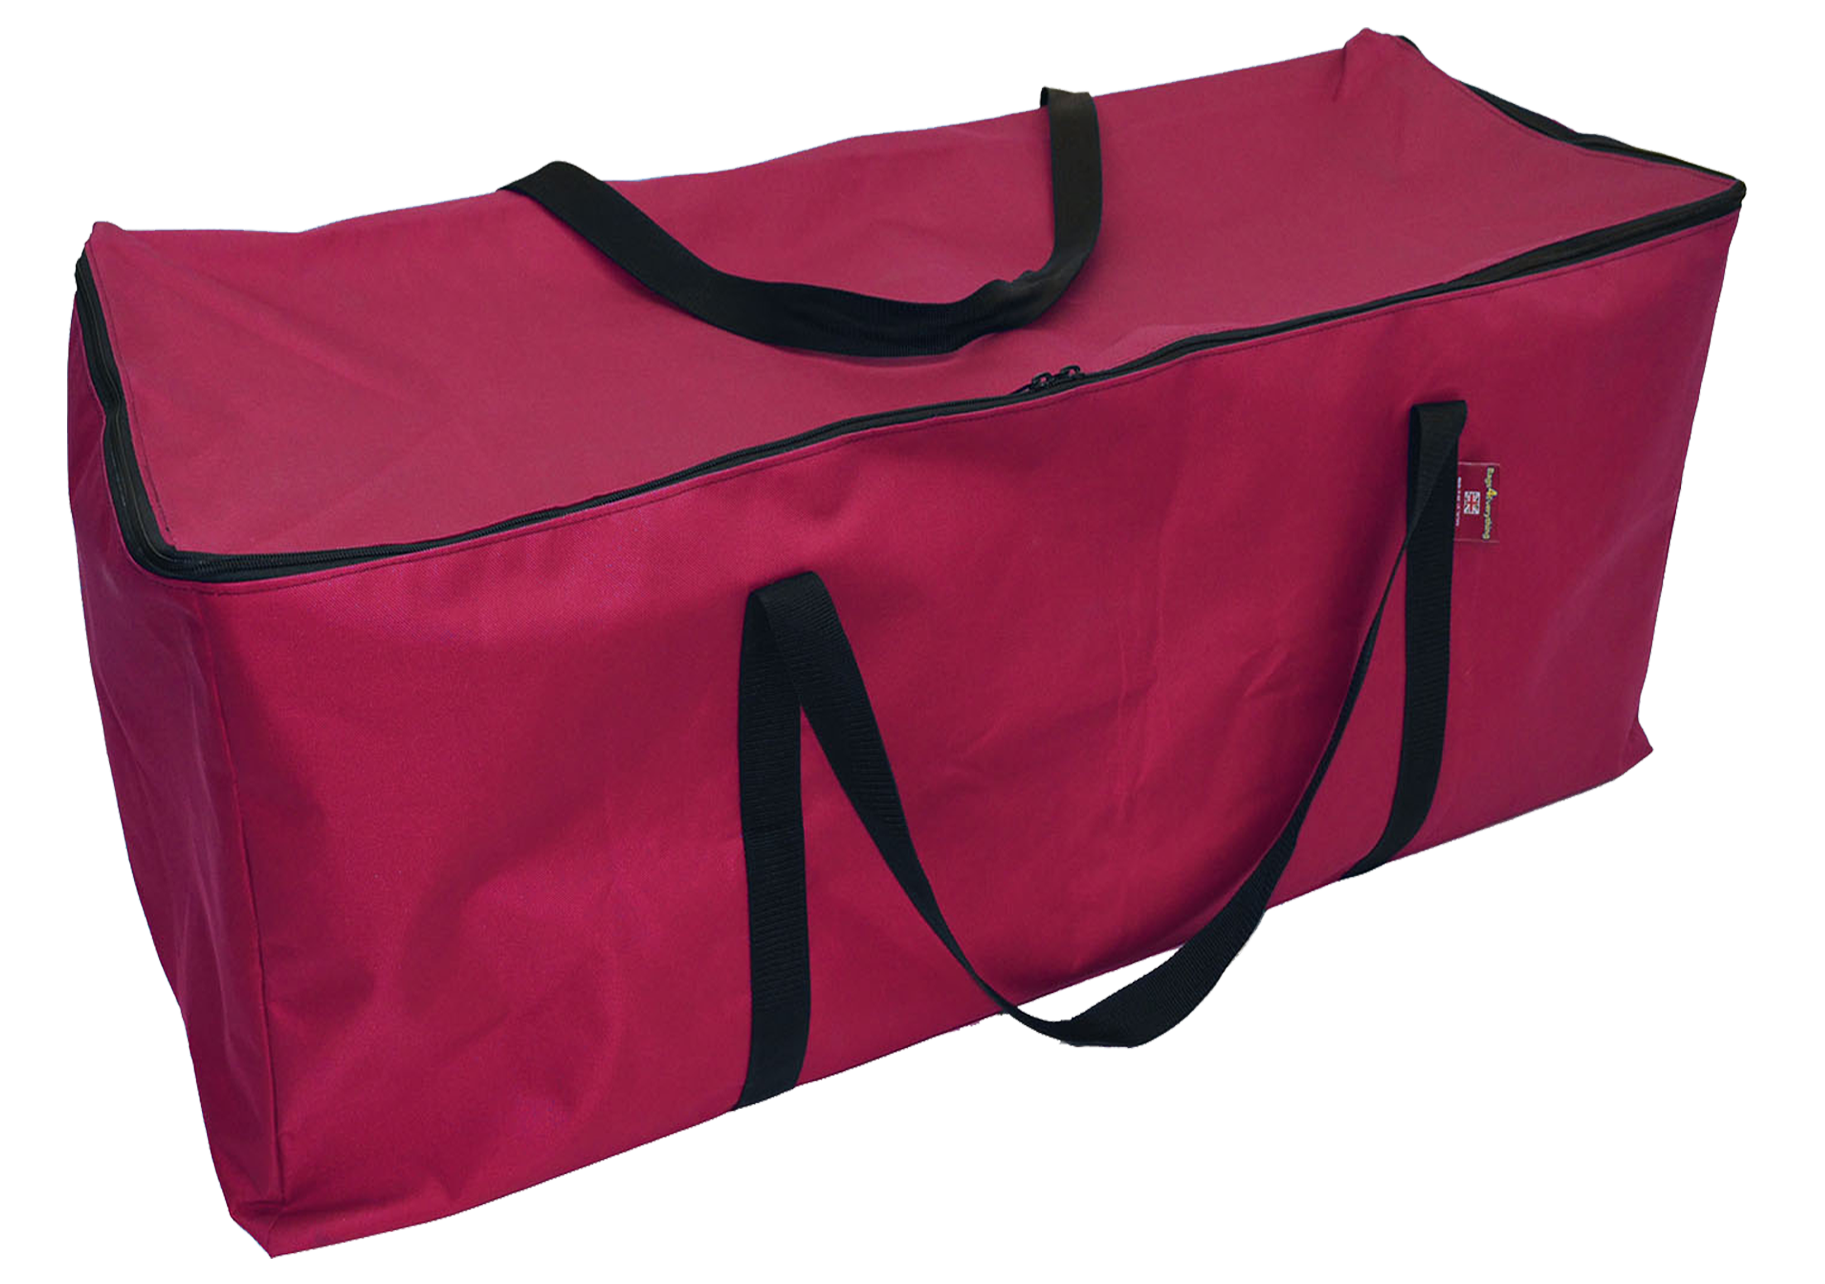 Bike Rack Rear Storage Bag Bags4everything